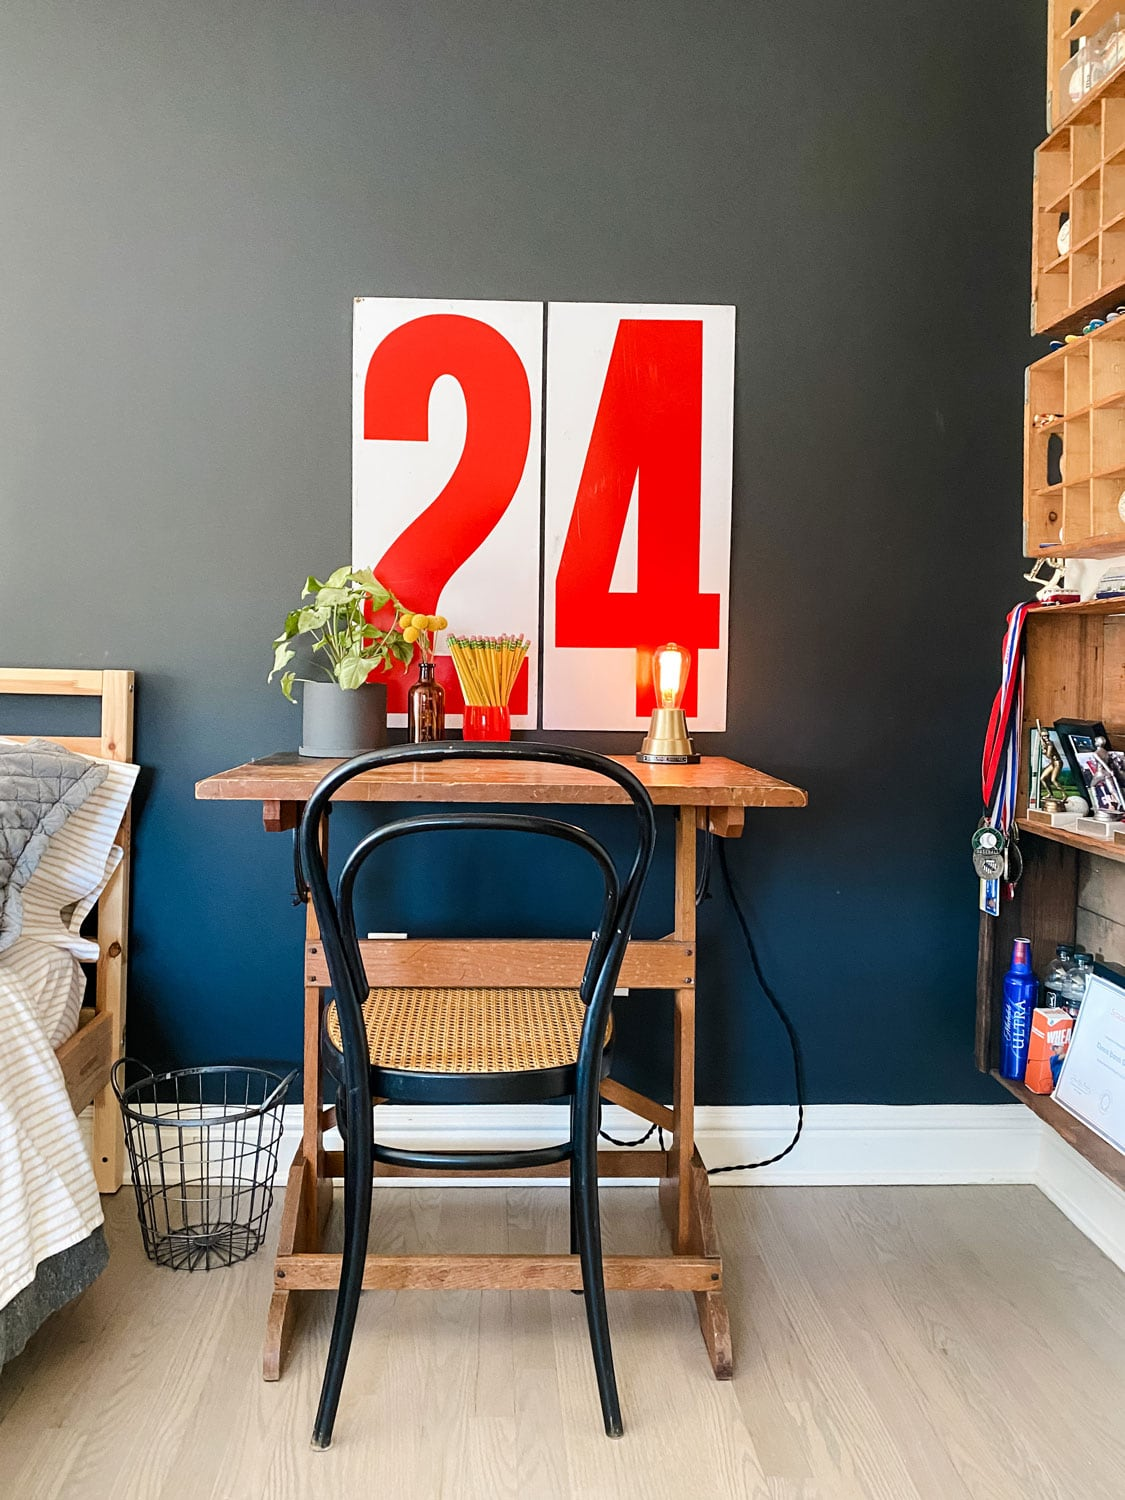 old desk, chair, vintage gas station numbers on black wall